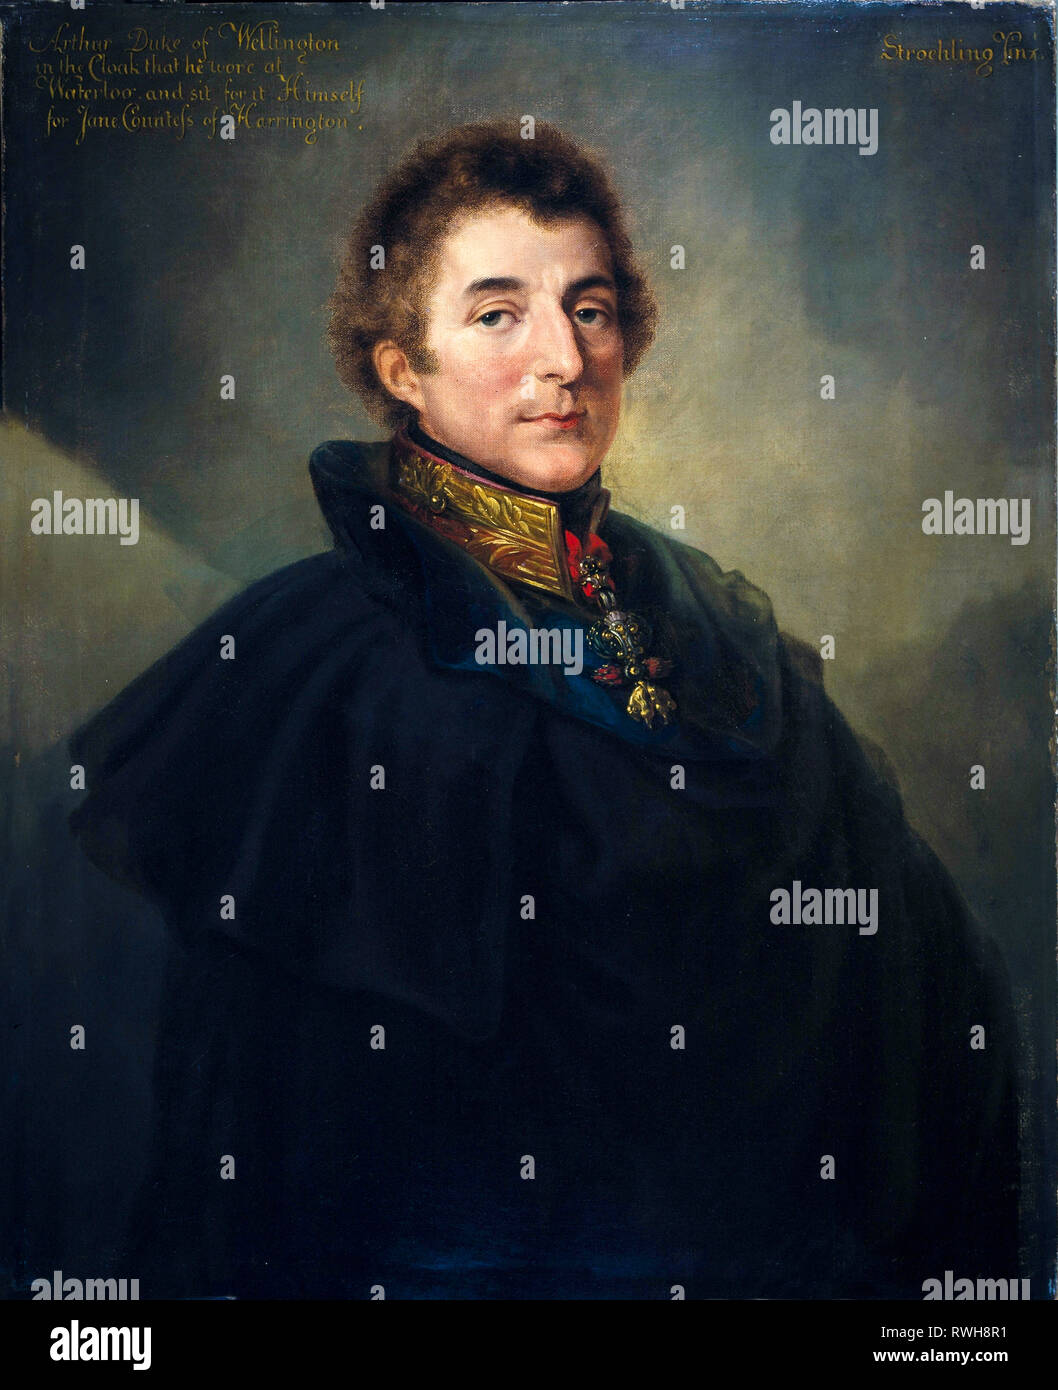 Field Marshal Arthur Wellesley, KG GCB (1769-1852), 1st Duke of Wellington, portrait painting, 1820 by Peter Edward Stroehling - Stock Image